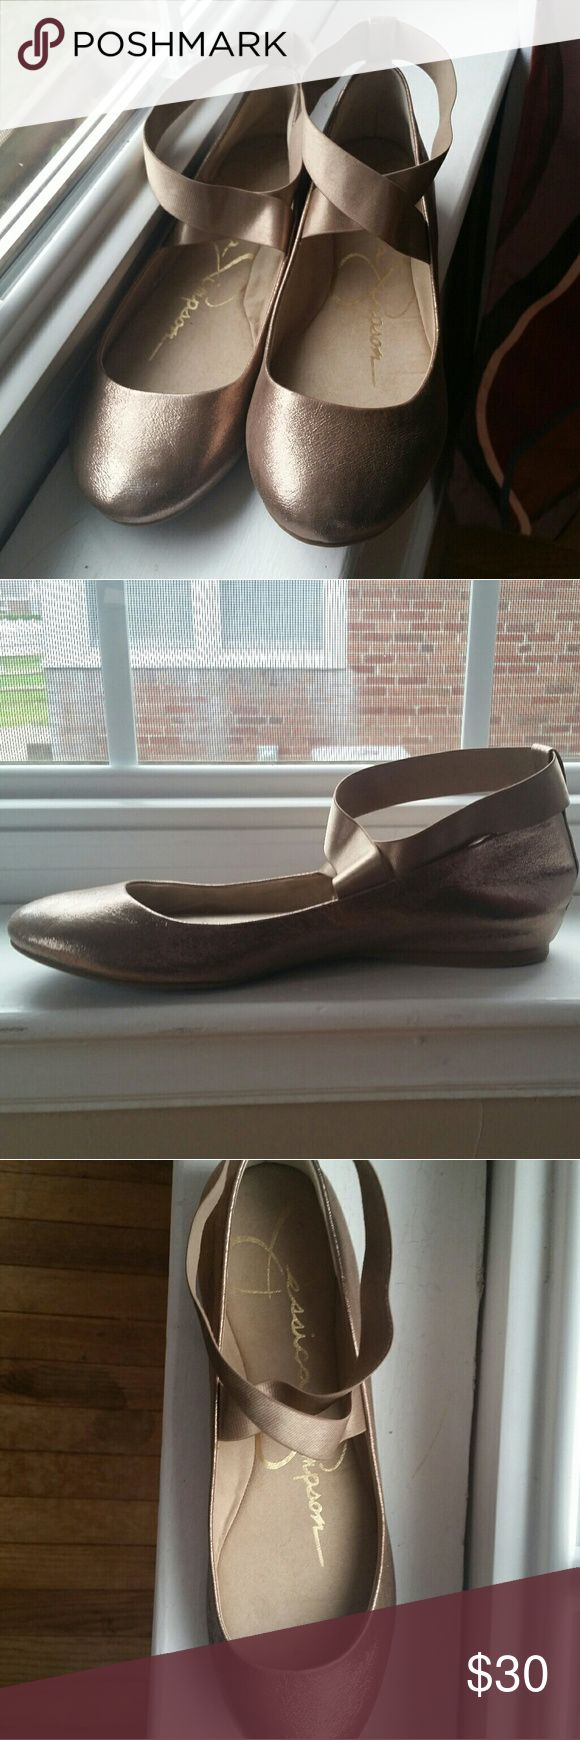 Jessica Simpson Mandayss Ballet Flats These gold Jessica Simpson ballet flats were worn once. The strap around the ankle is elastic. No scuffs or stains. **Feel free to make an offer! Jessica Simpson Shoes Flats & Loafers